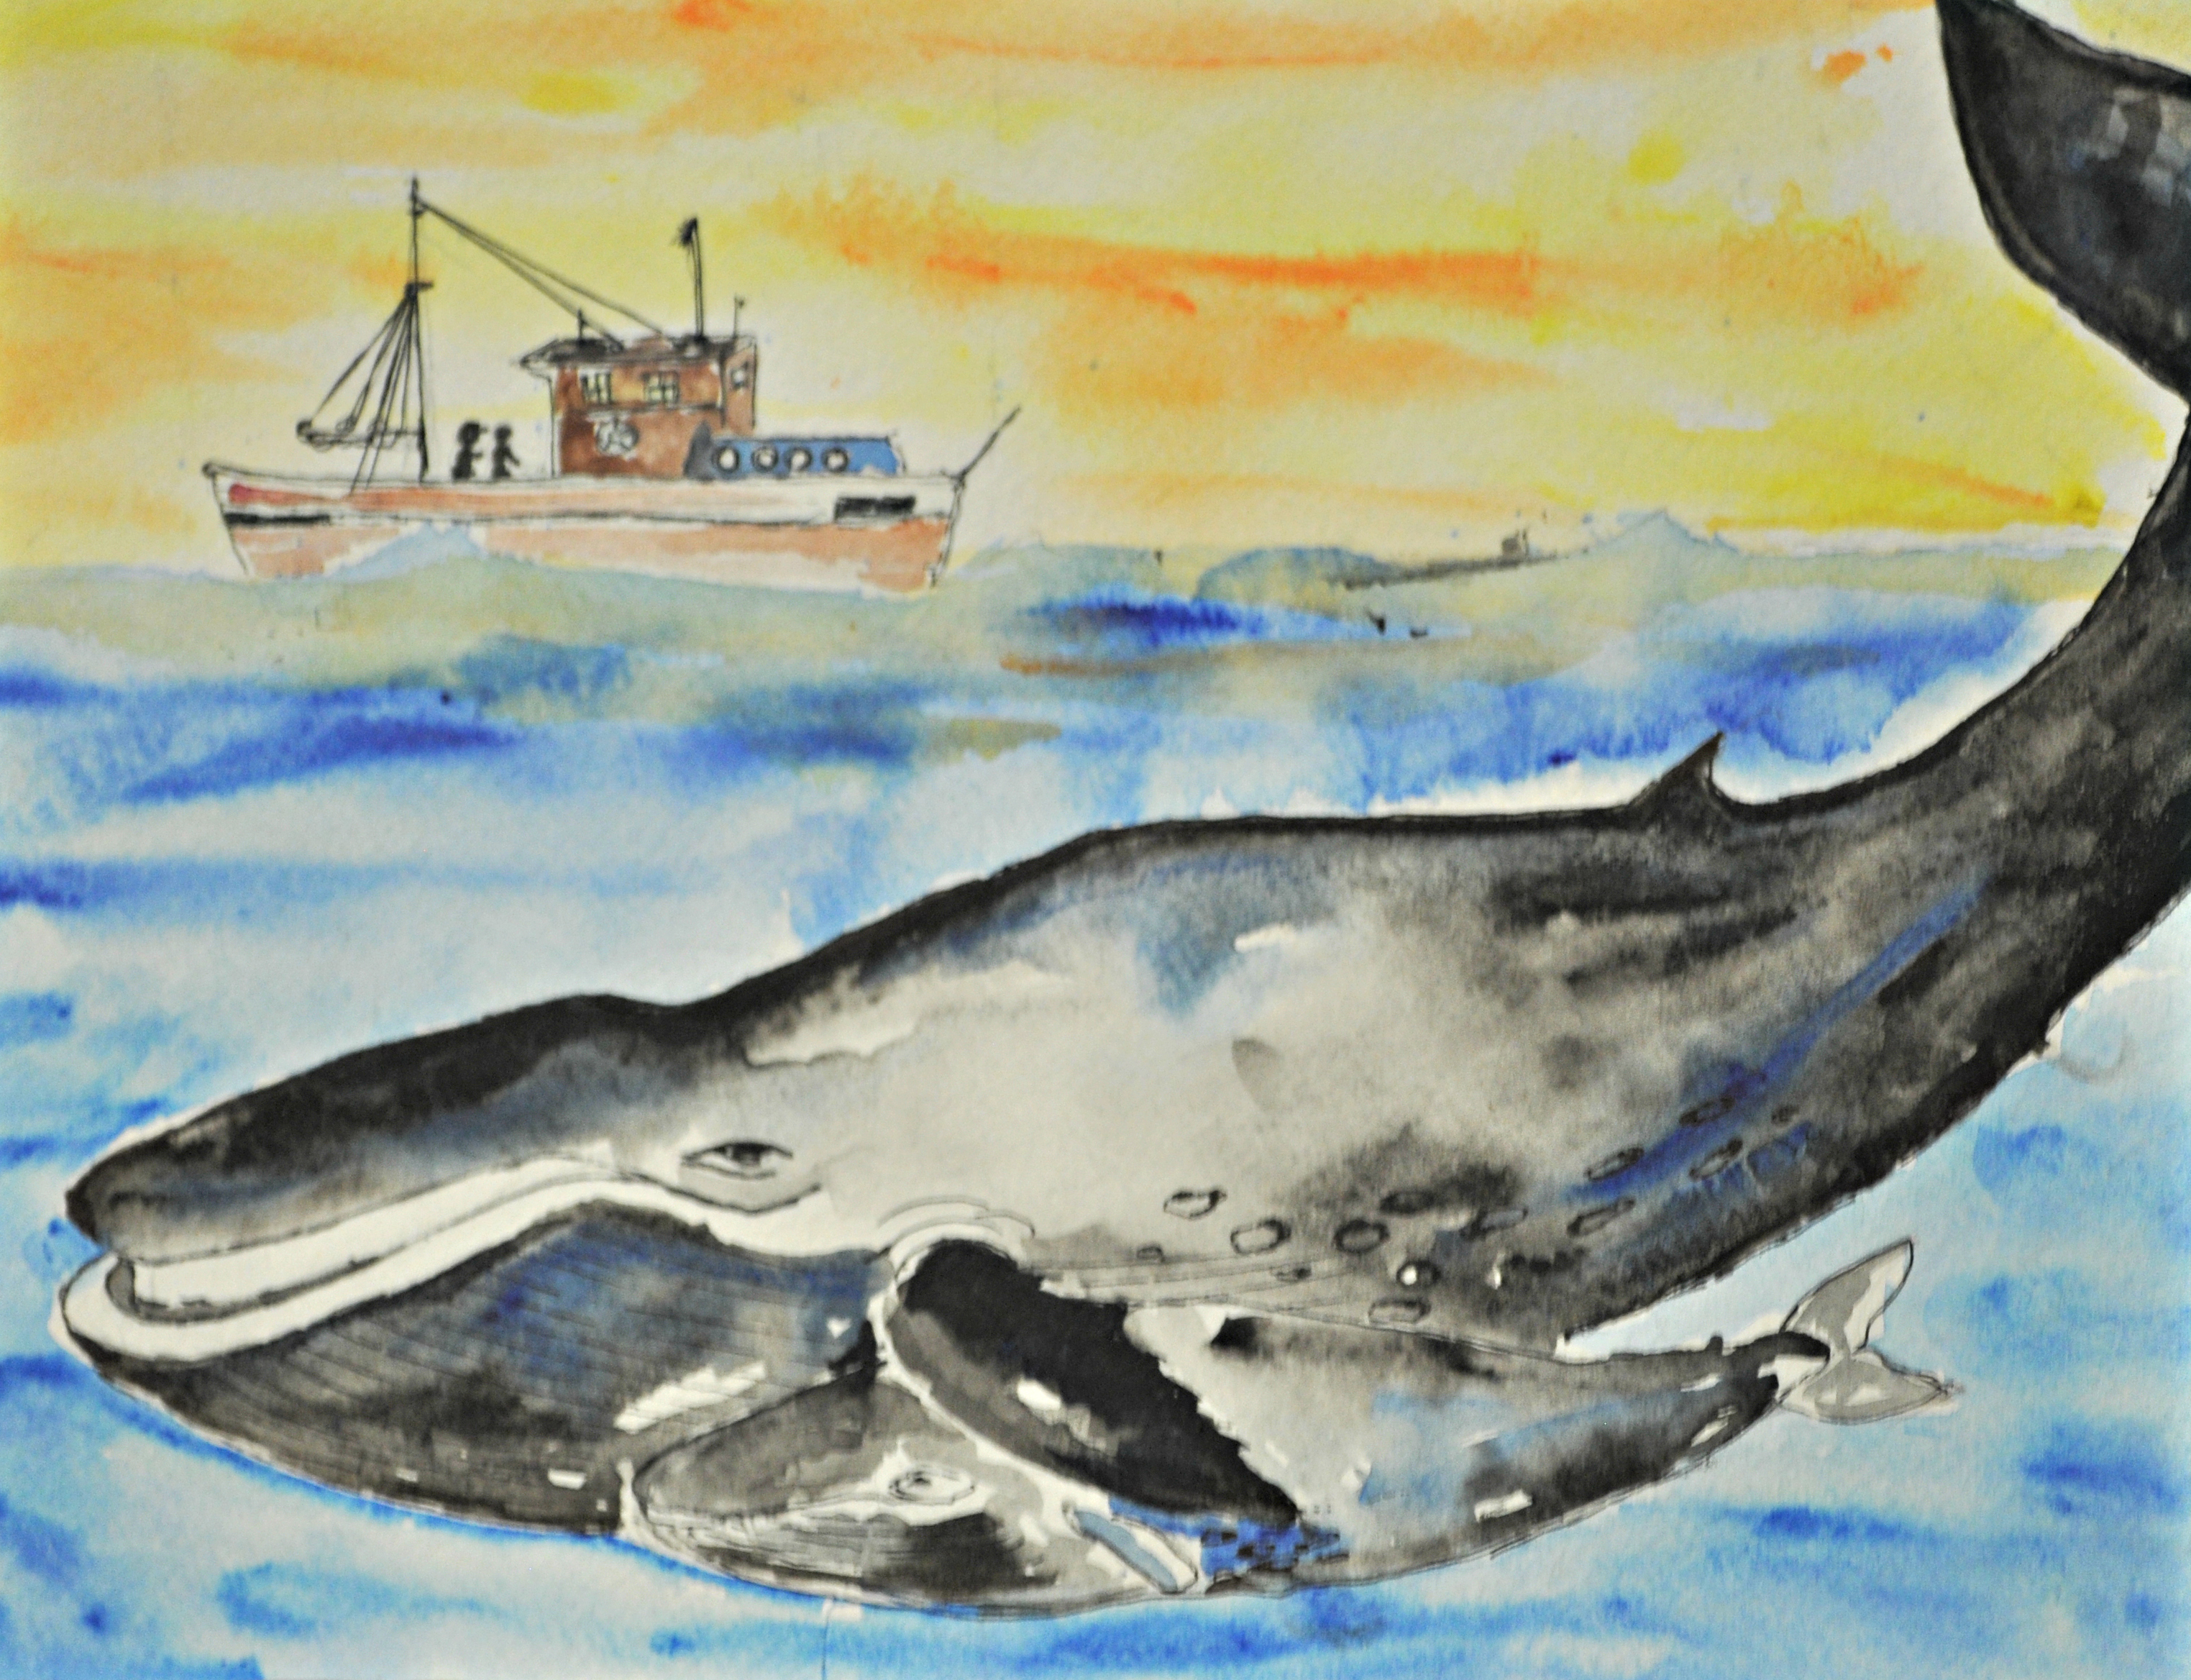 Youth Art Contest Produced Incredible Wildlife Artwork